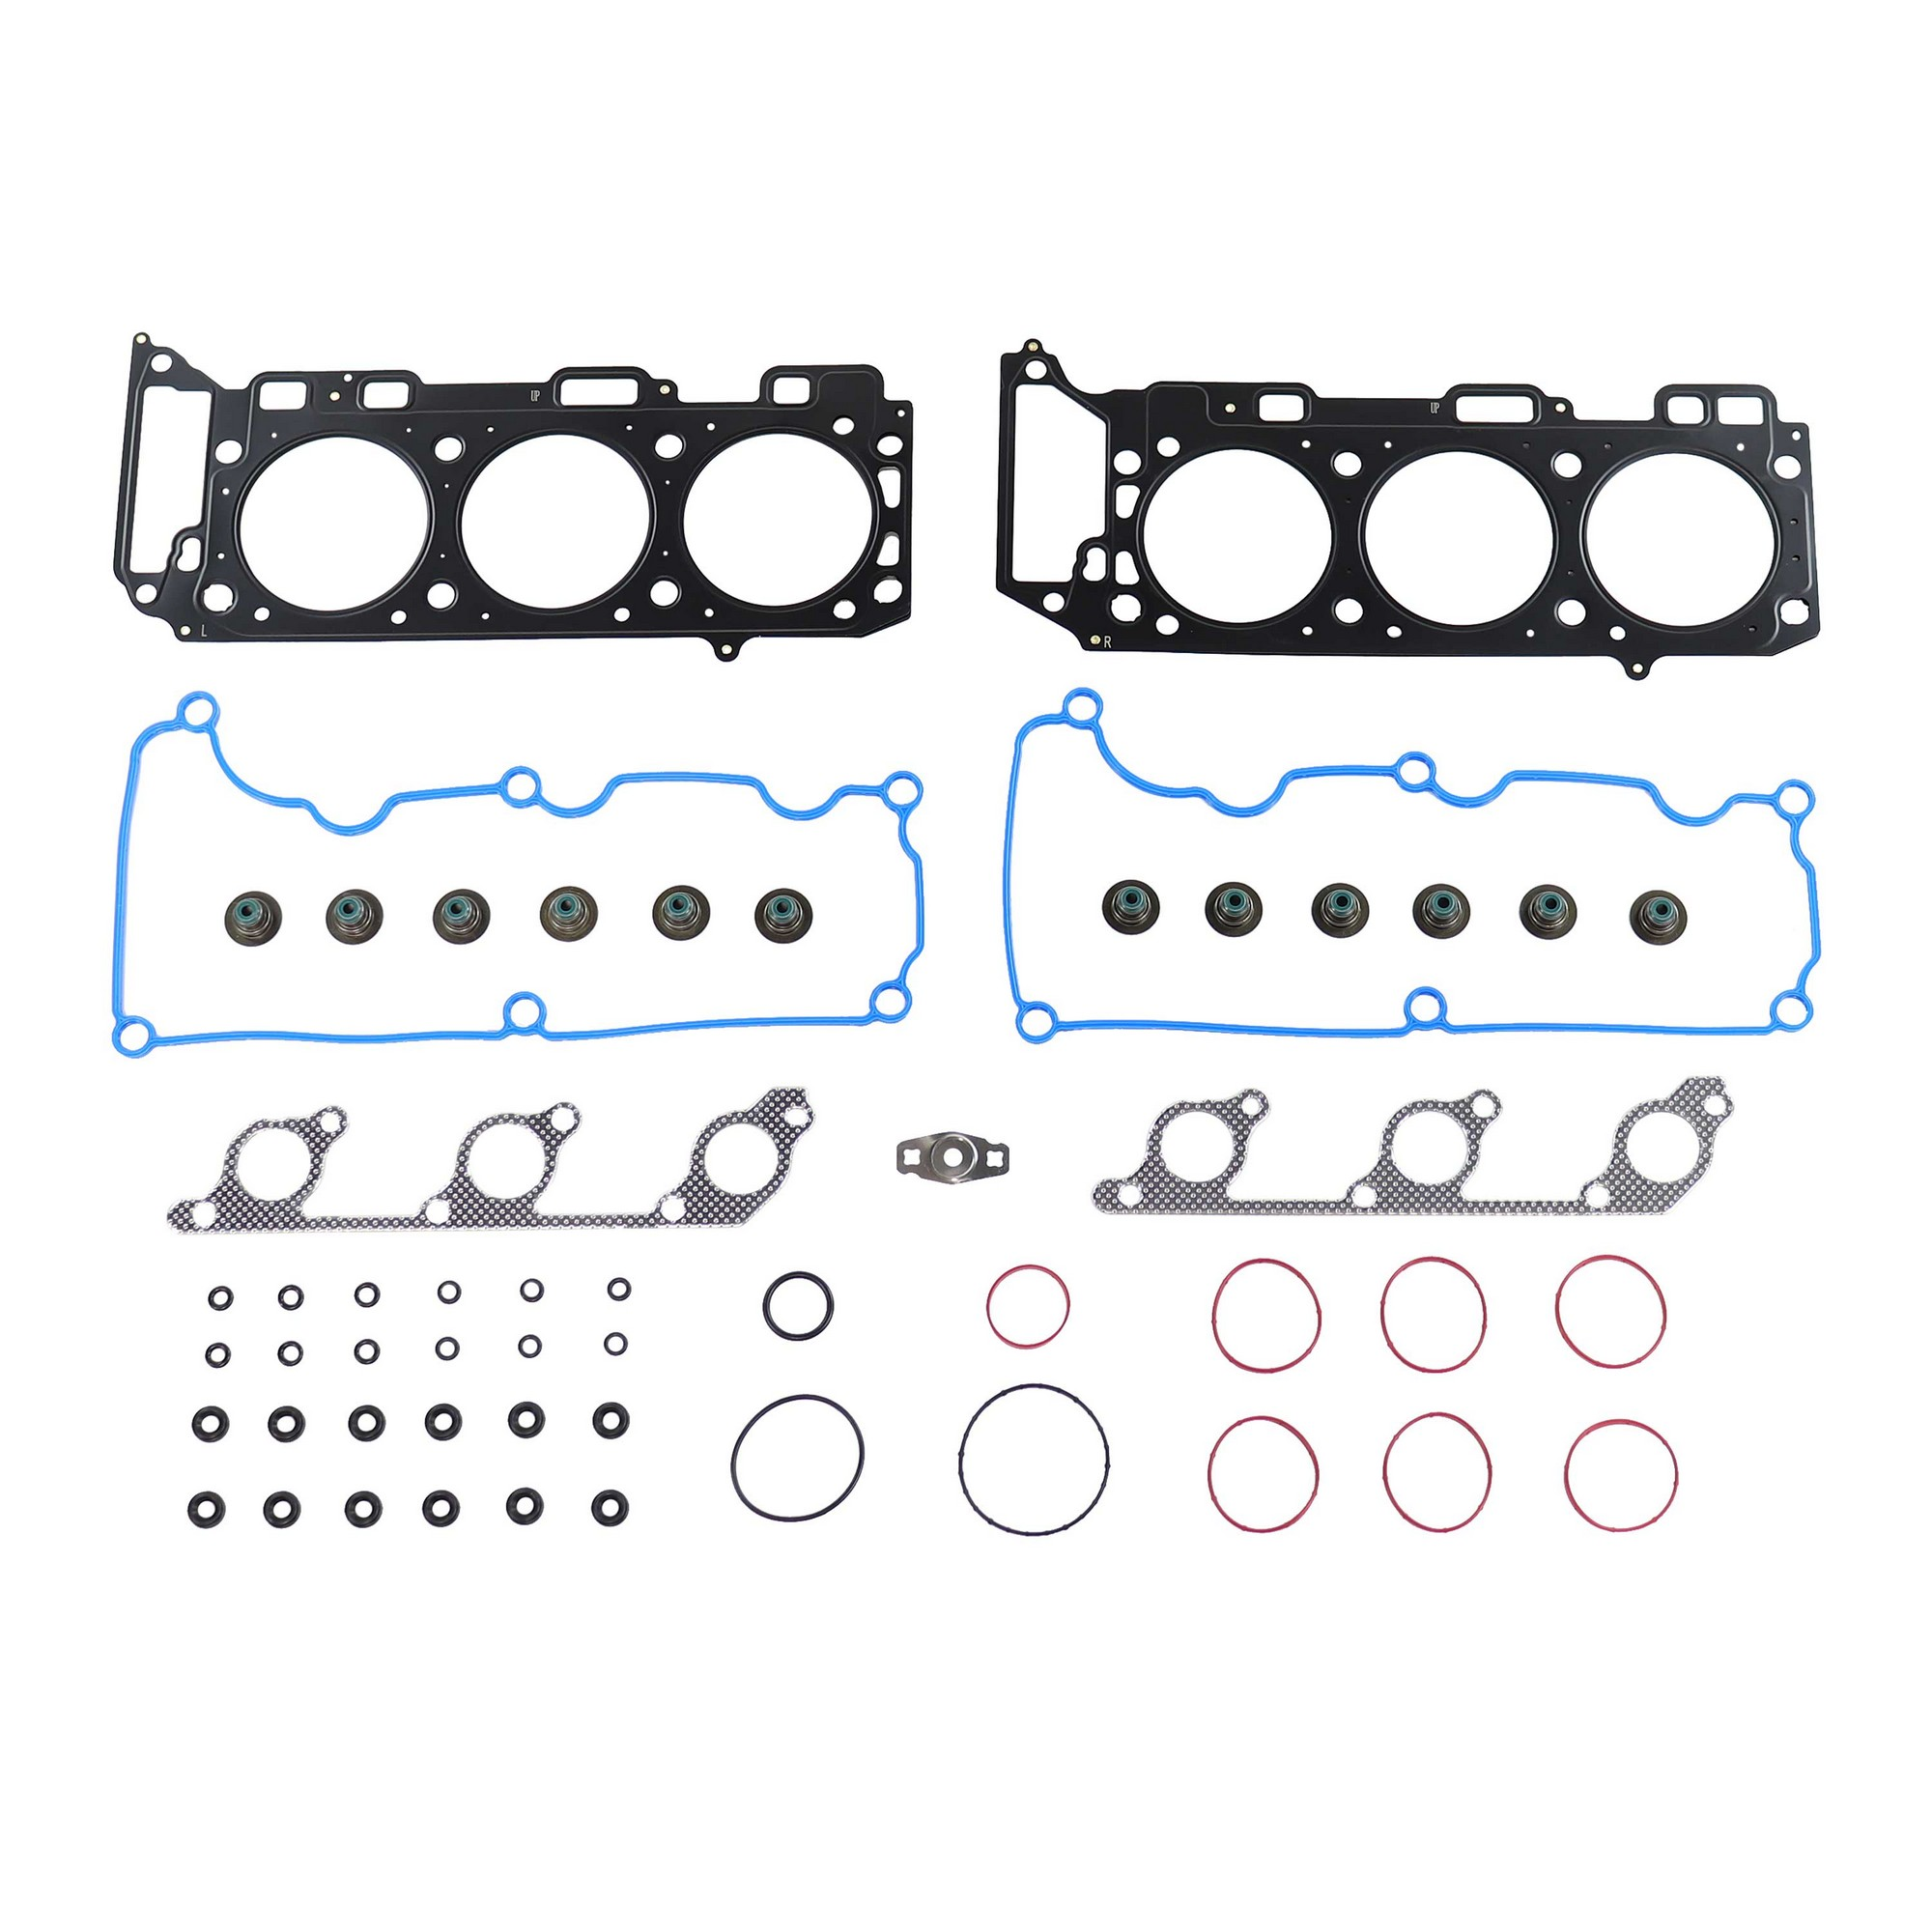 Dnj Hgs Head Gasket Set For 05 10 Ford Mustang 4 0l V6